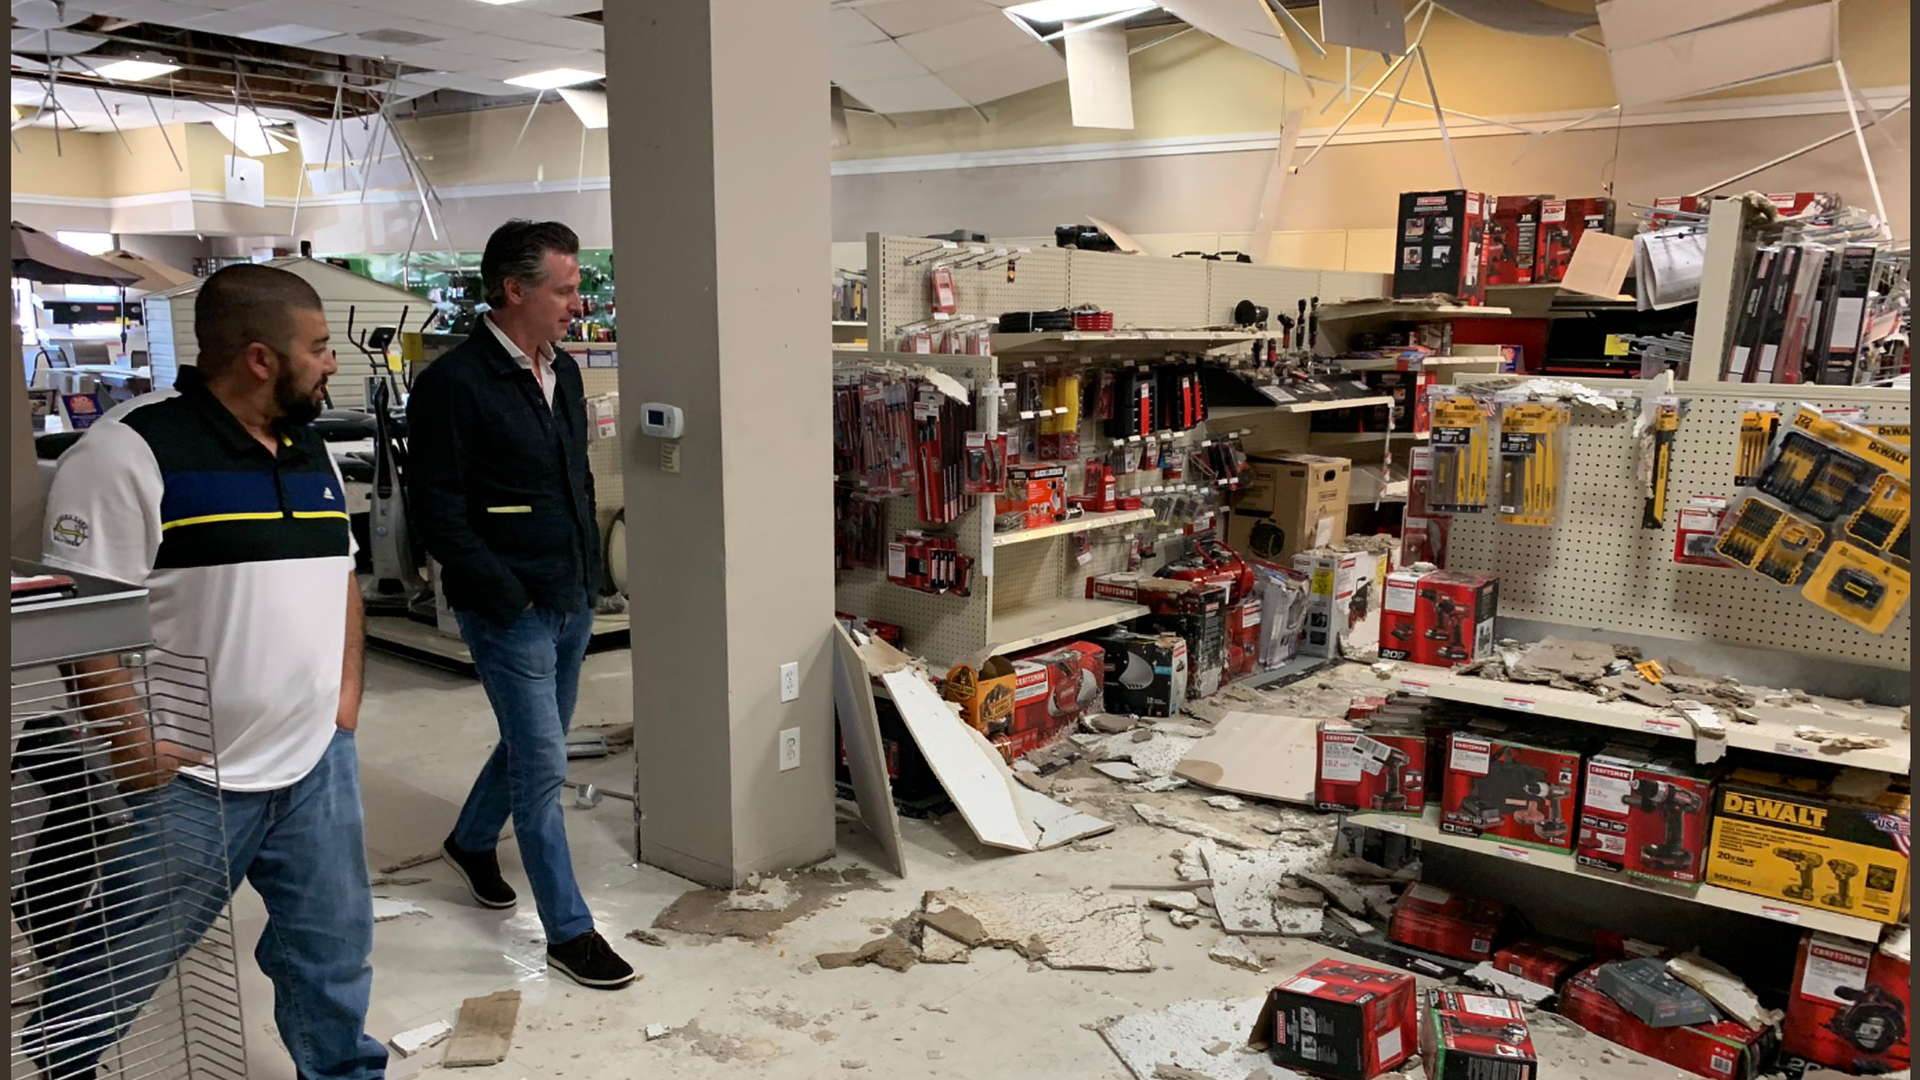 California Gov. Gavin Newsom assesses the quake damage in a store.